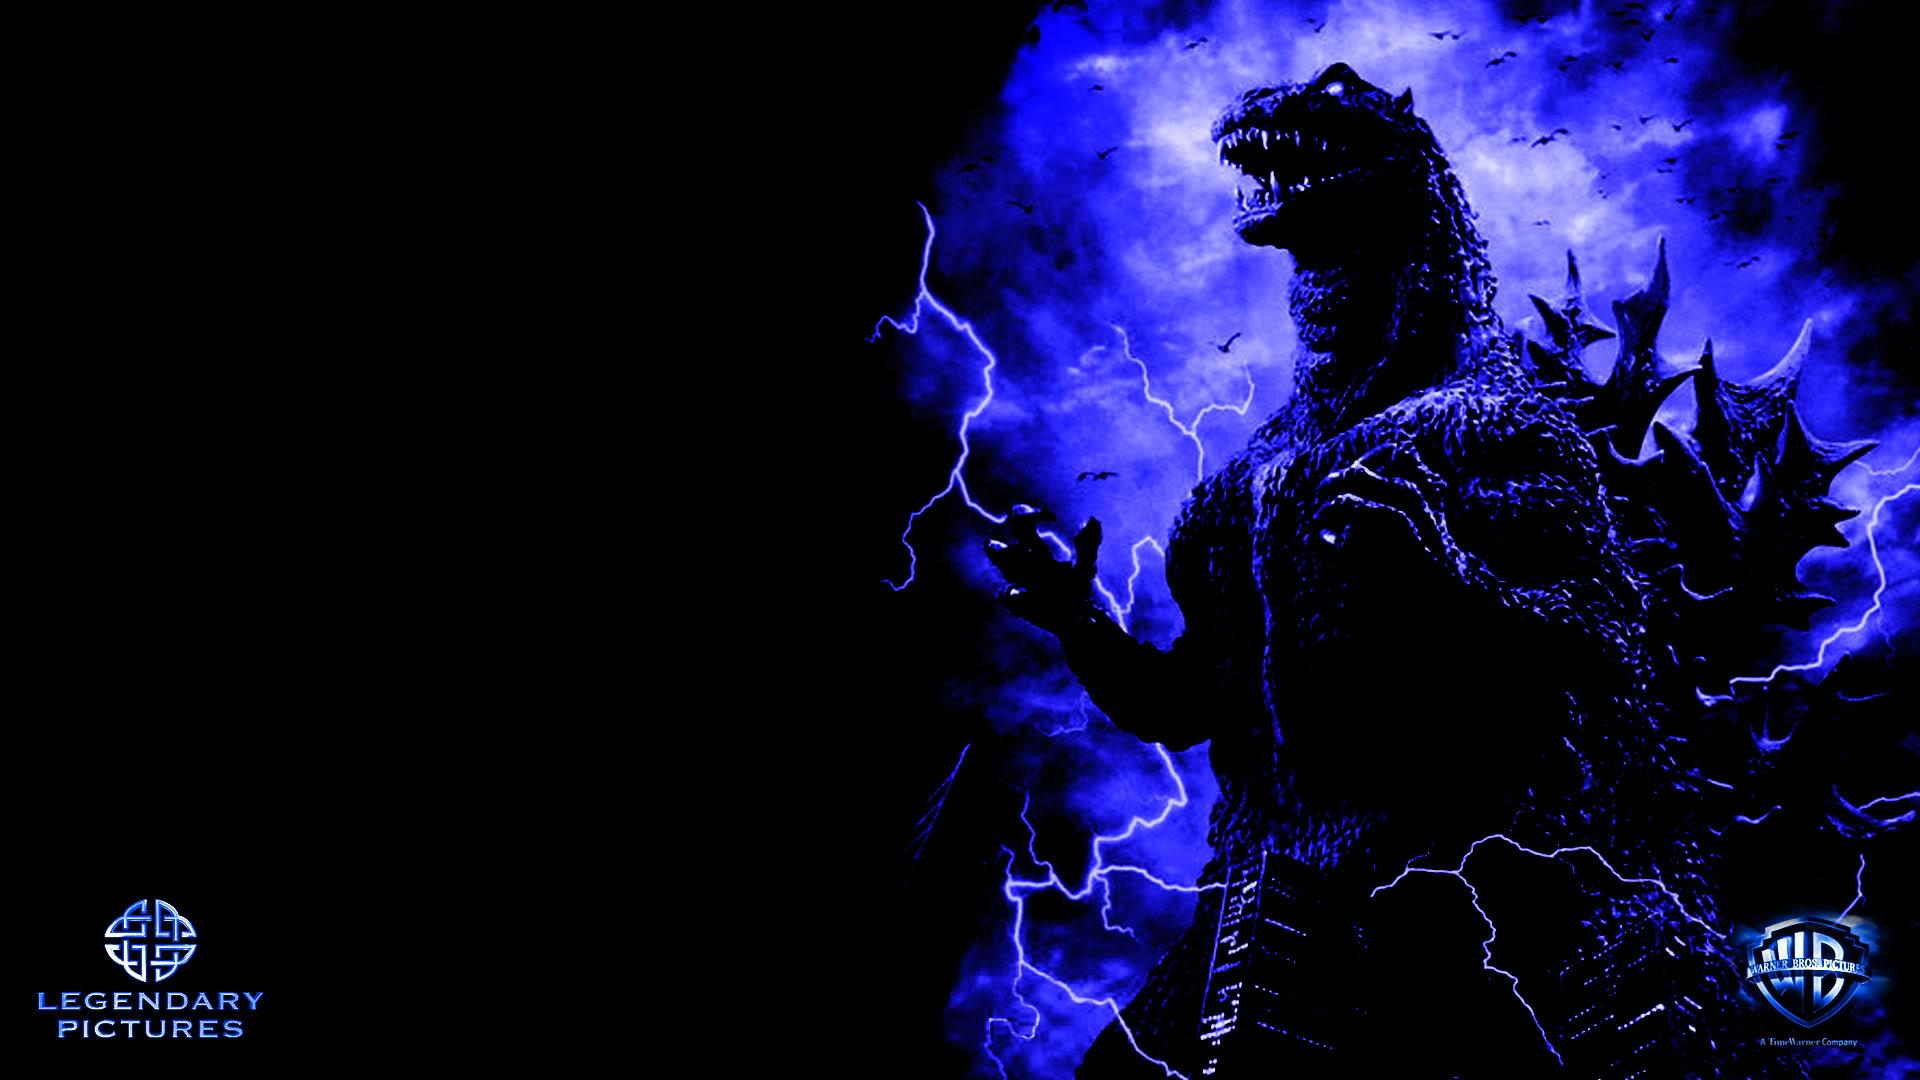 Godzilla Wallpapers HD Download 1920x1080